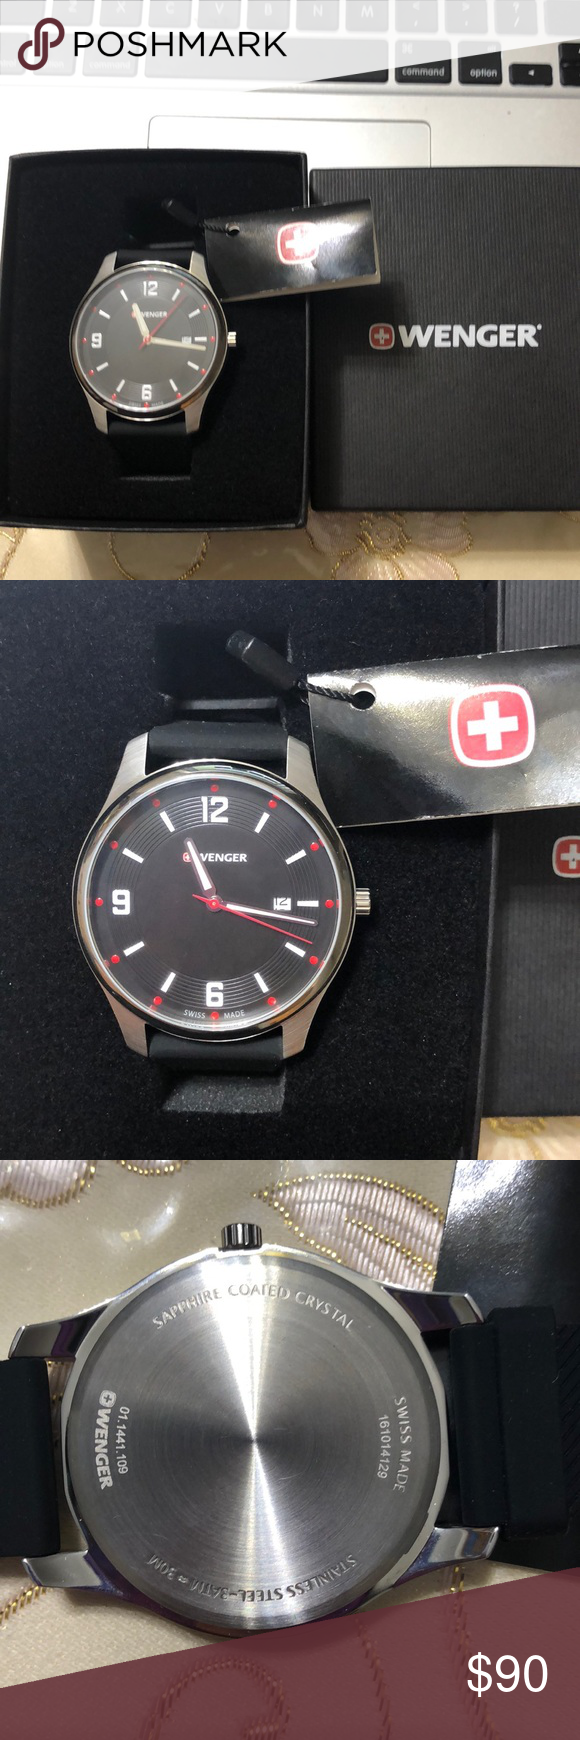 New Wenger Swiss Made Military Watch Military Watches Wenger Swiss Swiss Made